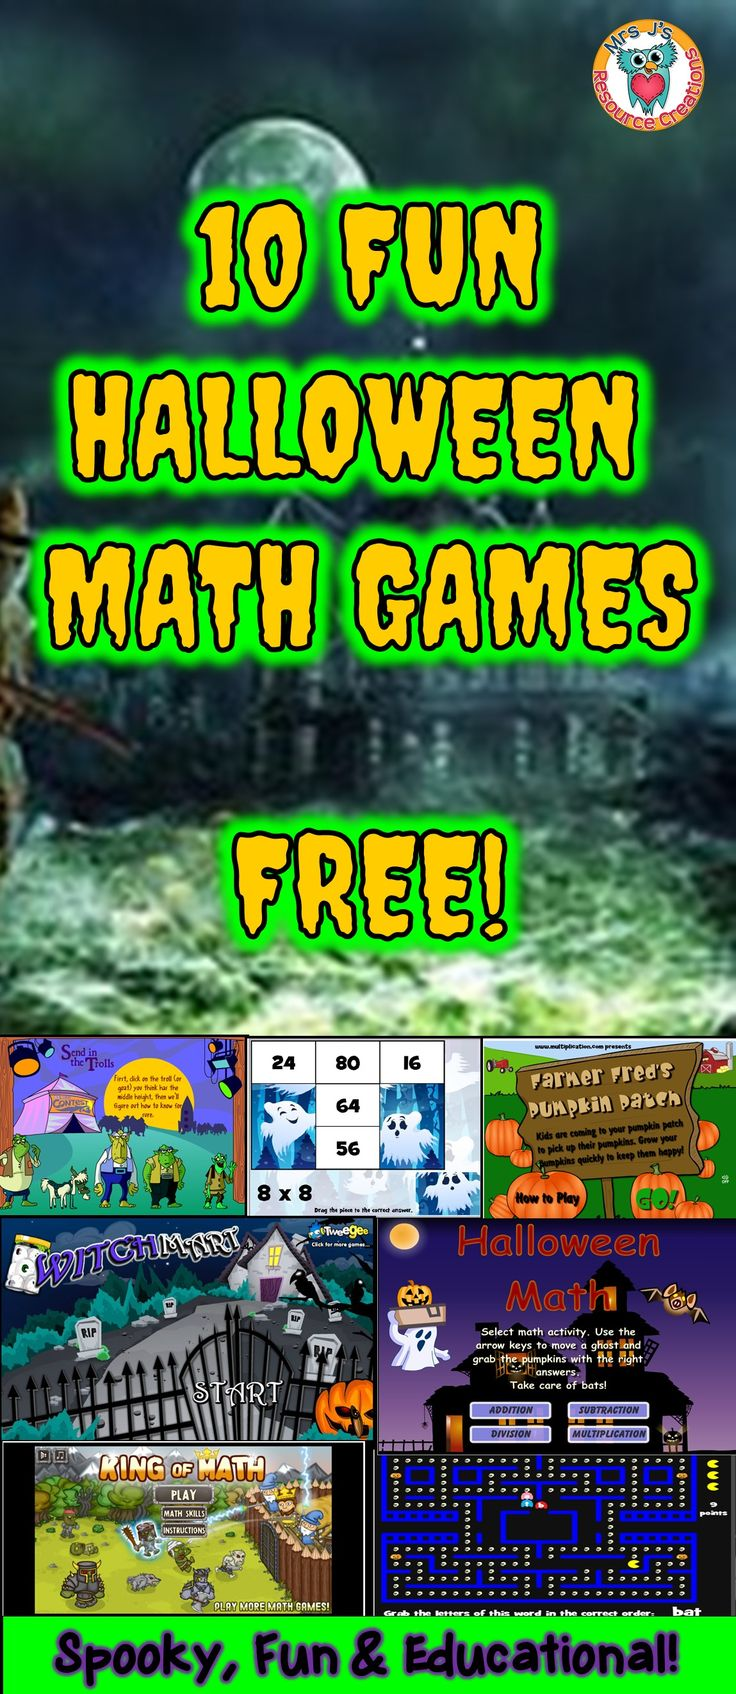 Halloween Math Games to play online for FREE!